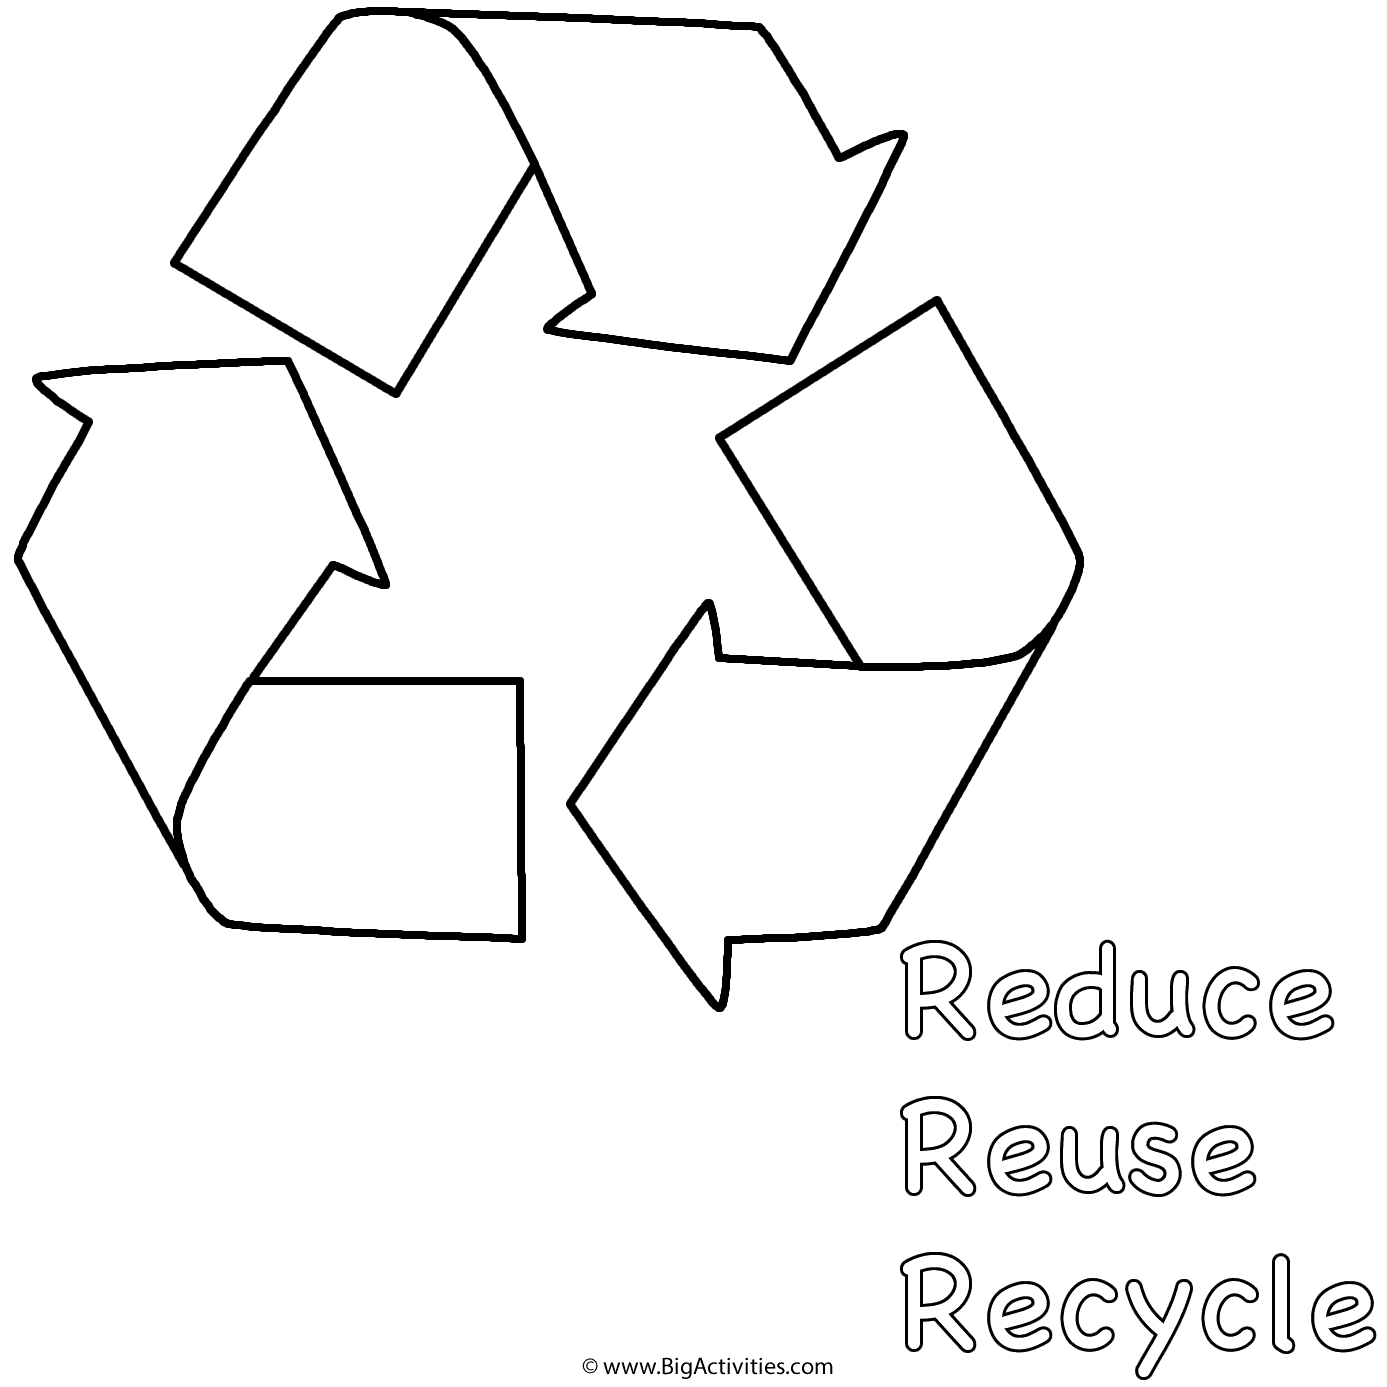 reduce reuse recycle symbol printable free recycling symbol printable download free clip art reuse symbol recycle reduce printable